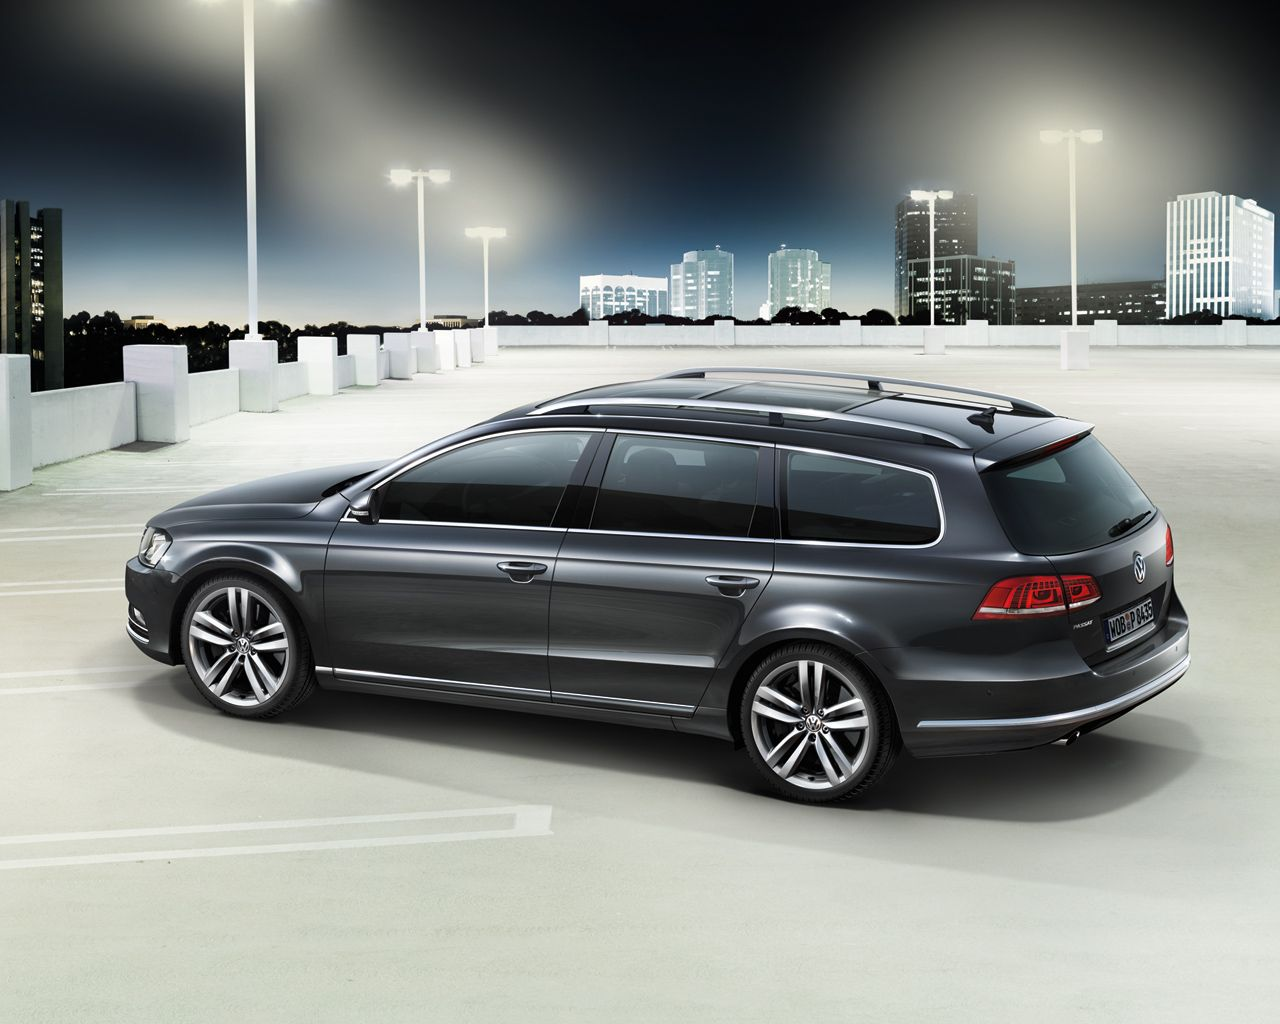 2013 volkswagen passat variant car side photos vw. Black Bedroom Furniture Sets. Home Design Ideas